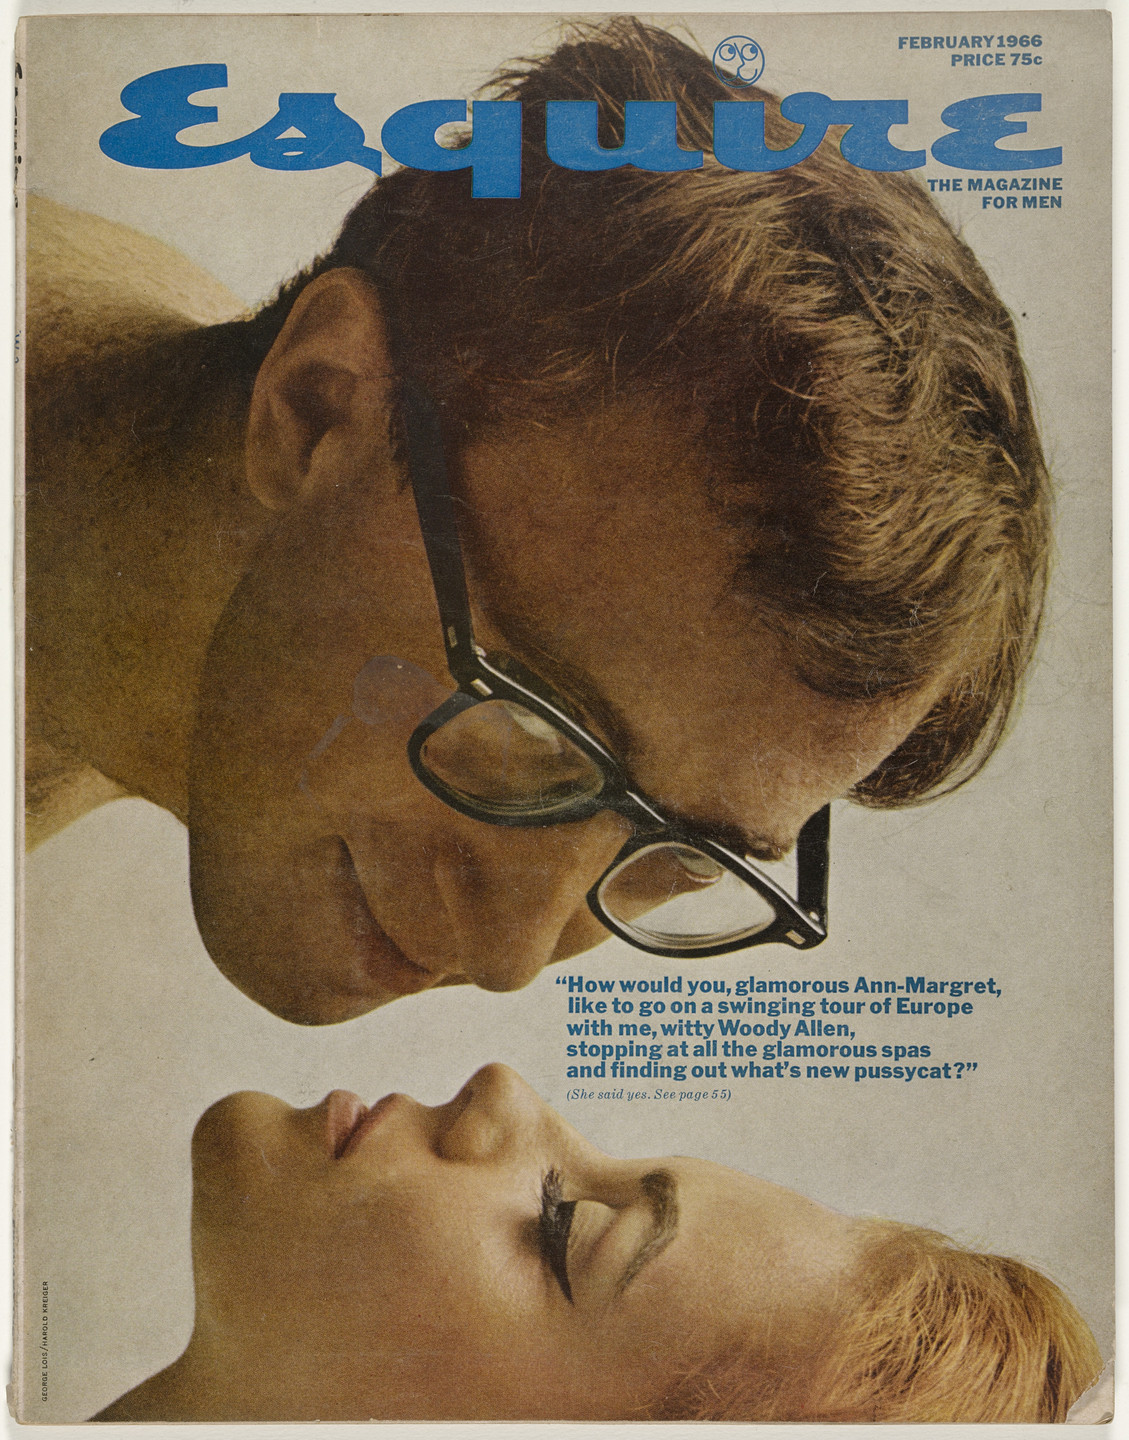 George Lois, Harold Krieger. Esquire Magazine, Issue no. 387, February 1966. 1966